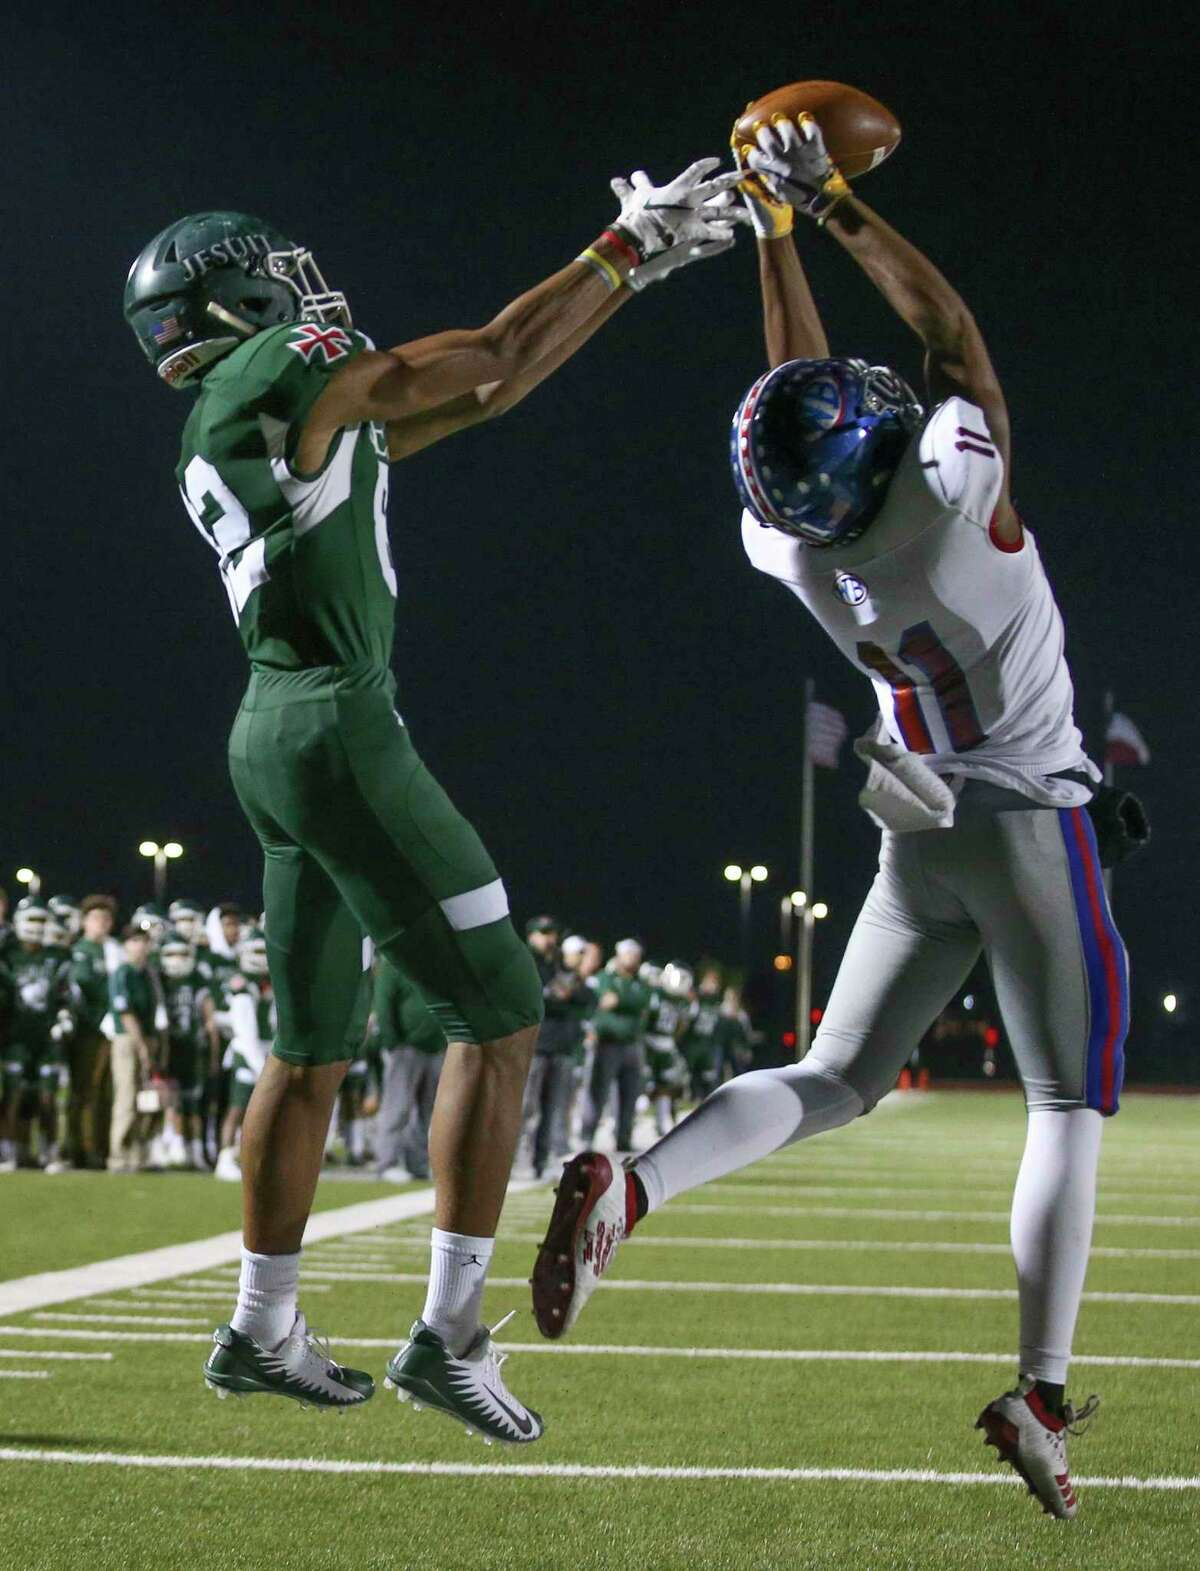 West Brook Bruins safety Bryce Anderson (11) intercepts the ball against Strake Jesuit Crusaders wide receiver Thaddeaus Johnson (12) in the first quarter of high school playoff football game on November 22, 2019 at Challenger Stadium in Waller, TX. The play was over turned because of pass interference on Anderson.